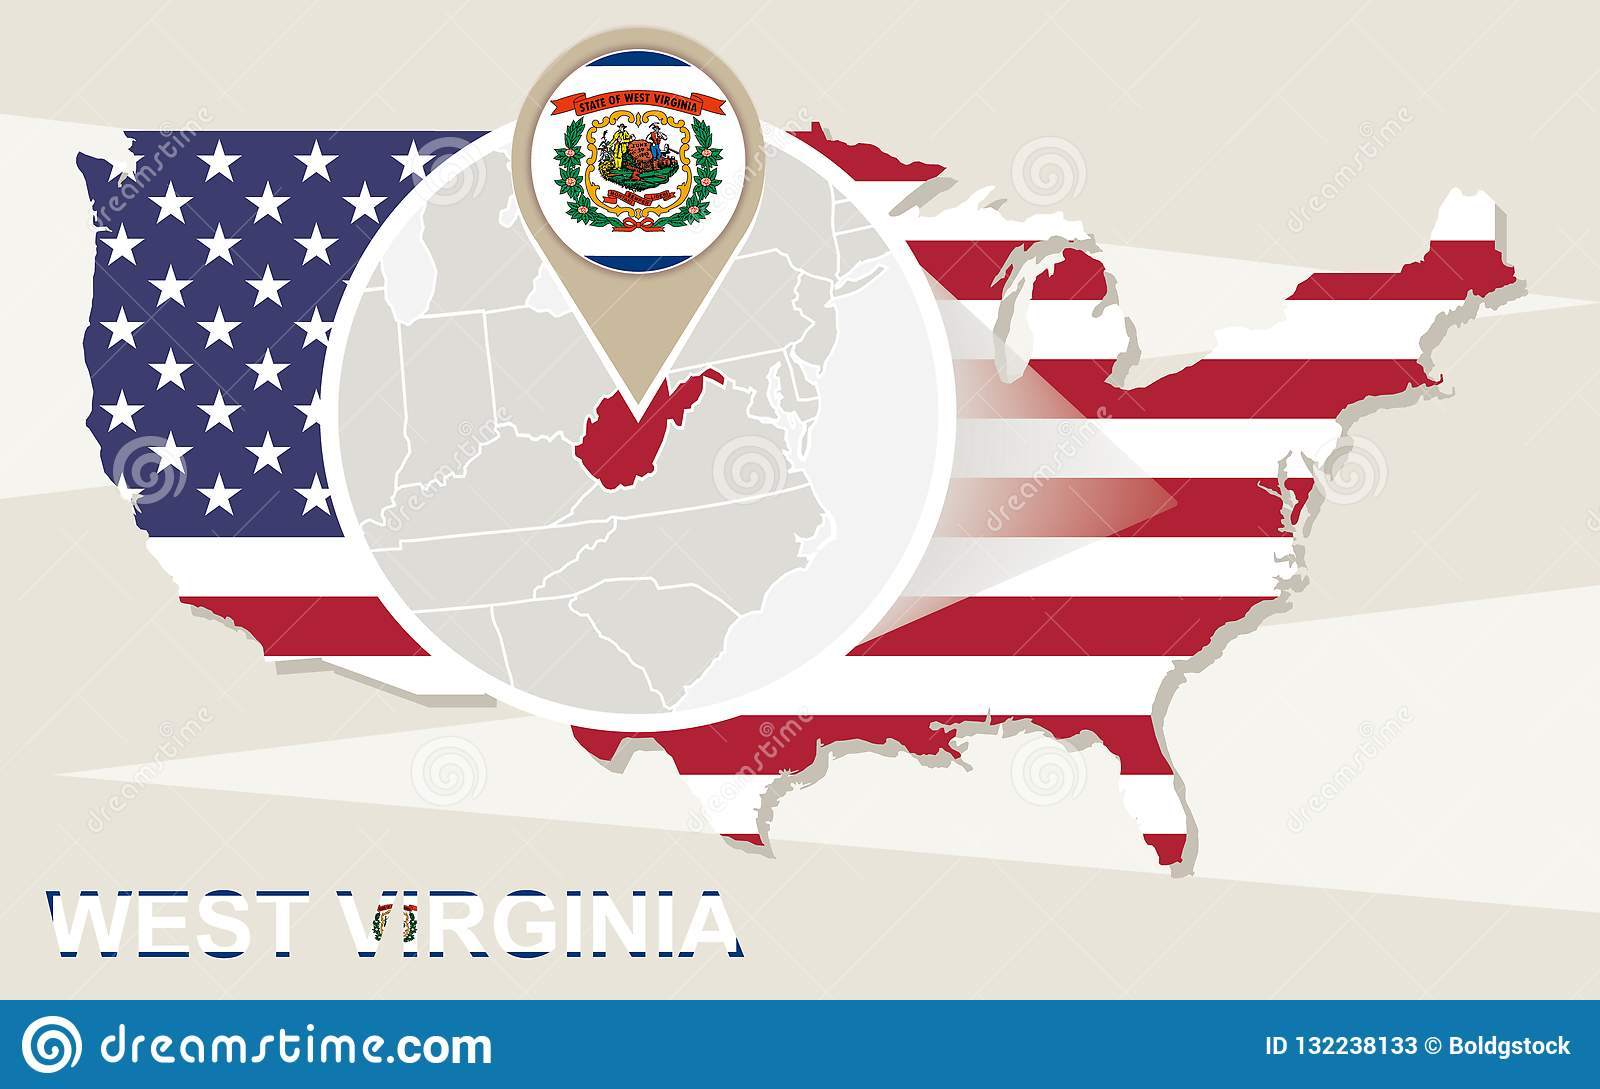 USA Map With Magnified West Virginia State. West Virginia ...